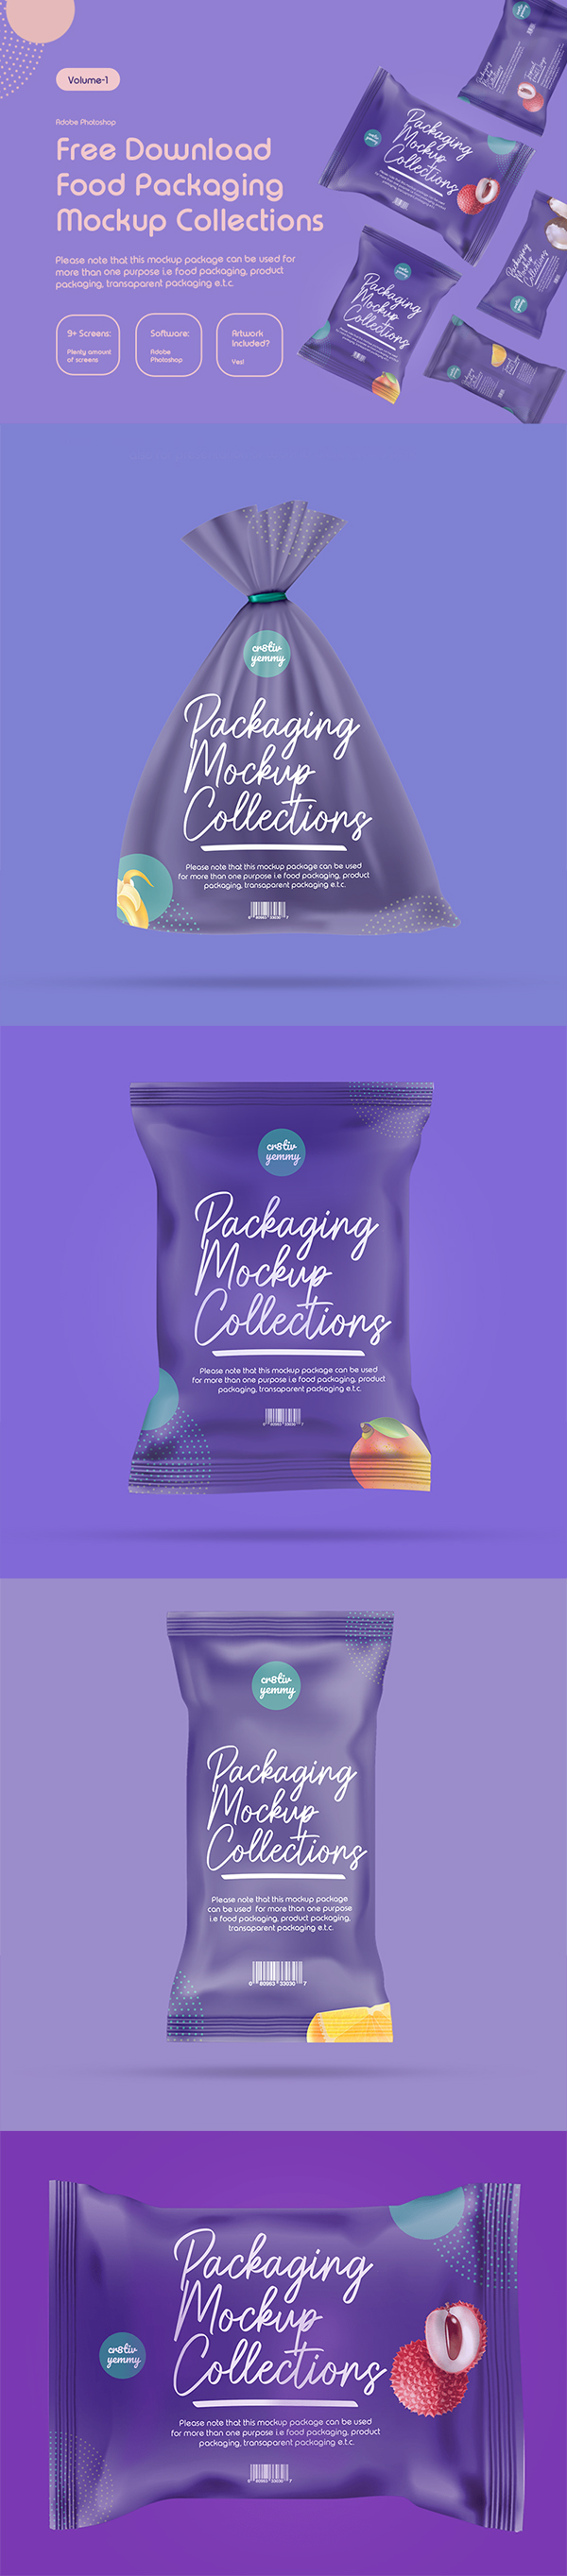 Packaging Mockups Collections